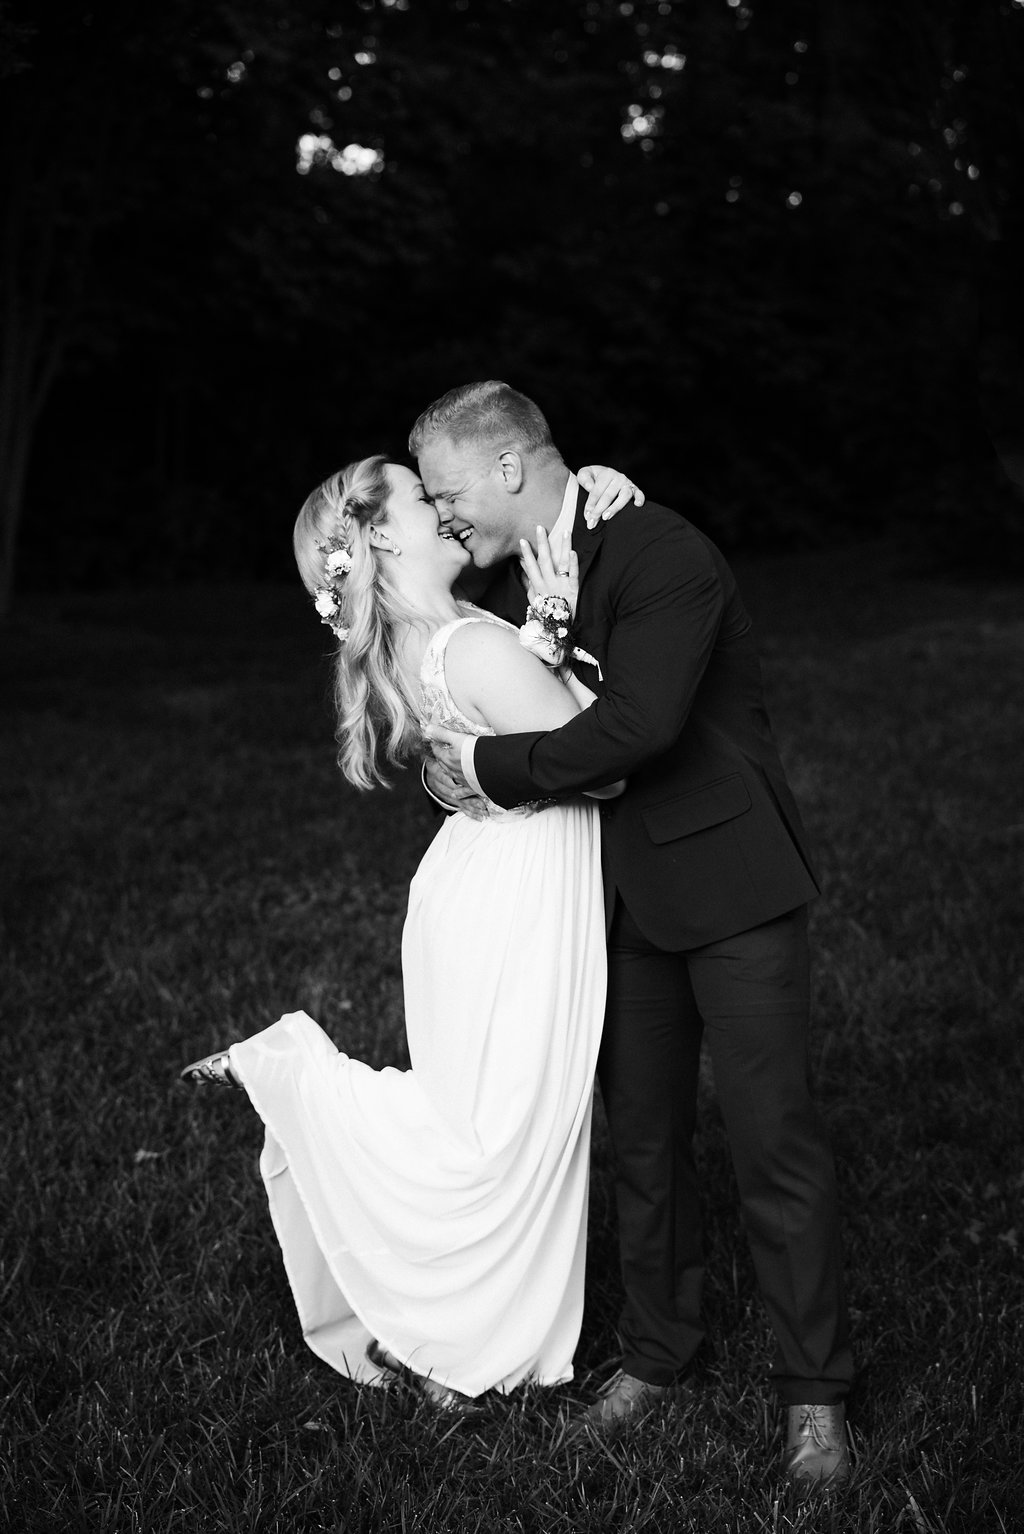 Bride and Groom at St. Patrick Episcopal Church Elopement in Mooresville, NC from Charlotte Wedding Photographer